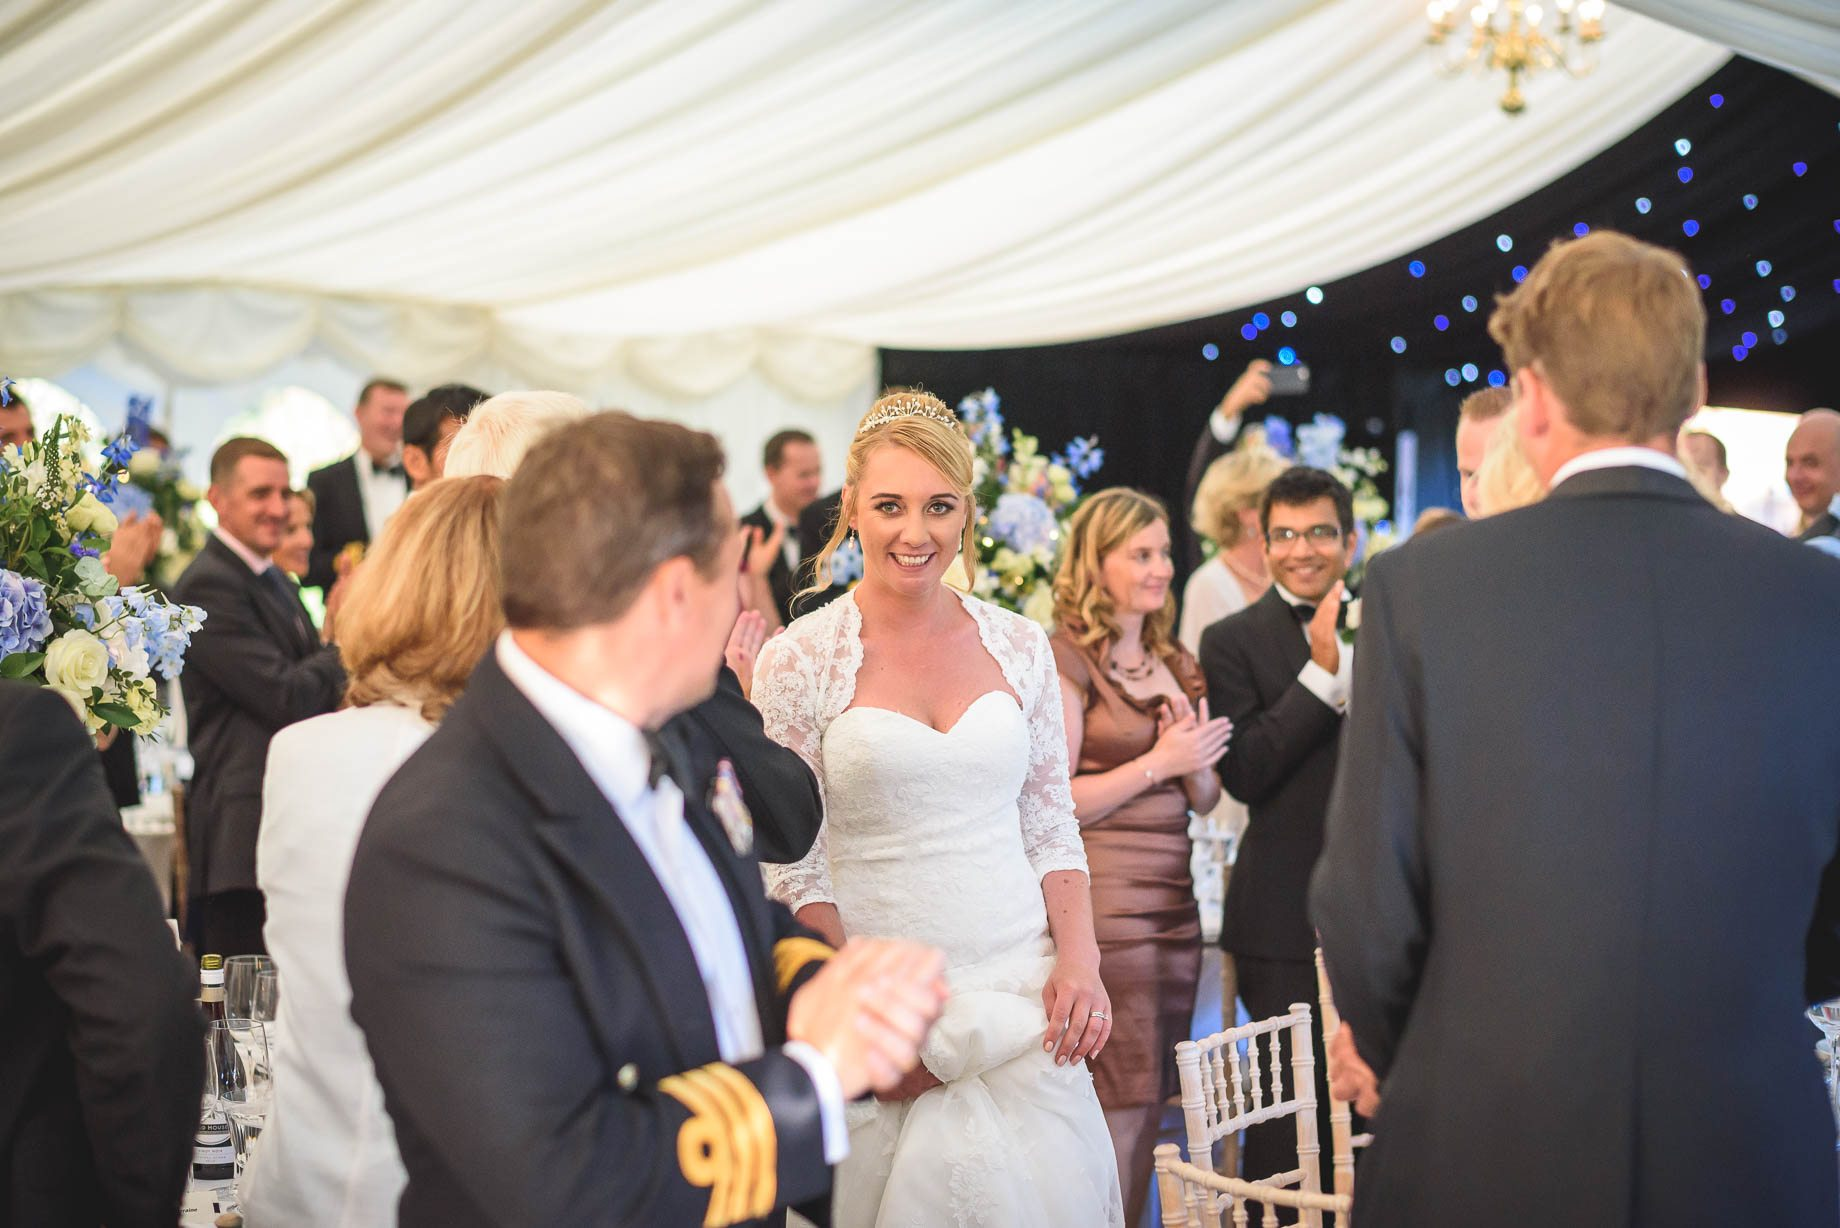 Hampshire wedding photography - Emily and Rob - Guy Collier Photography (145 of 192)